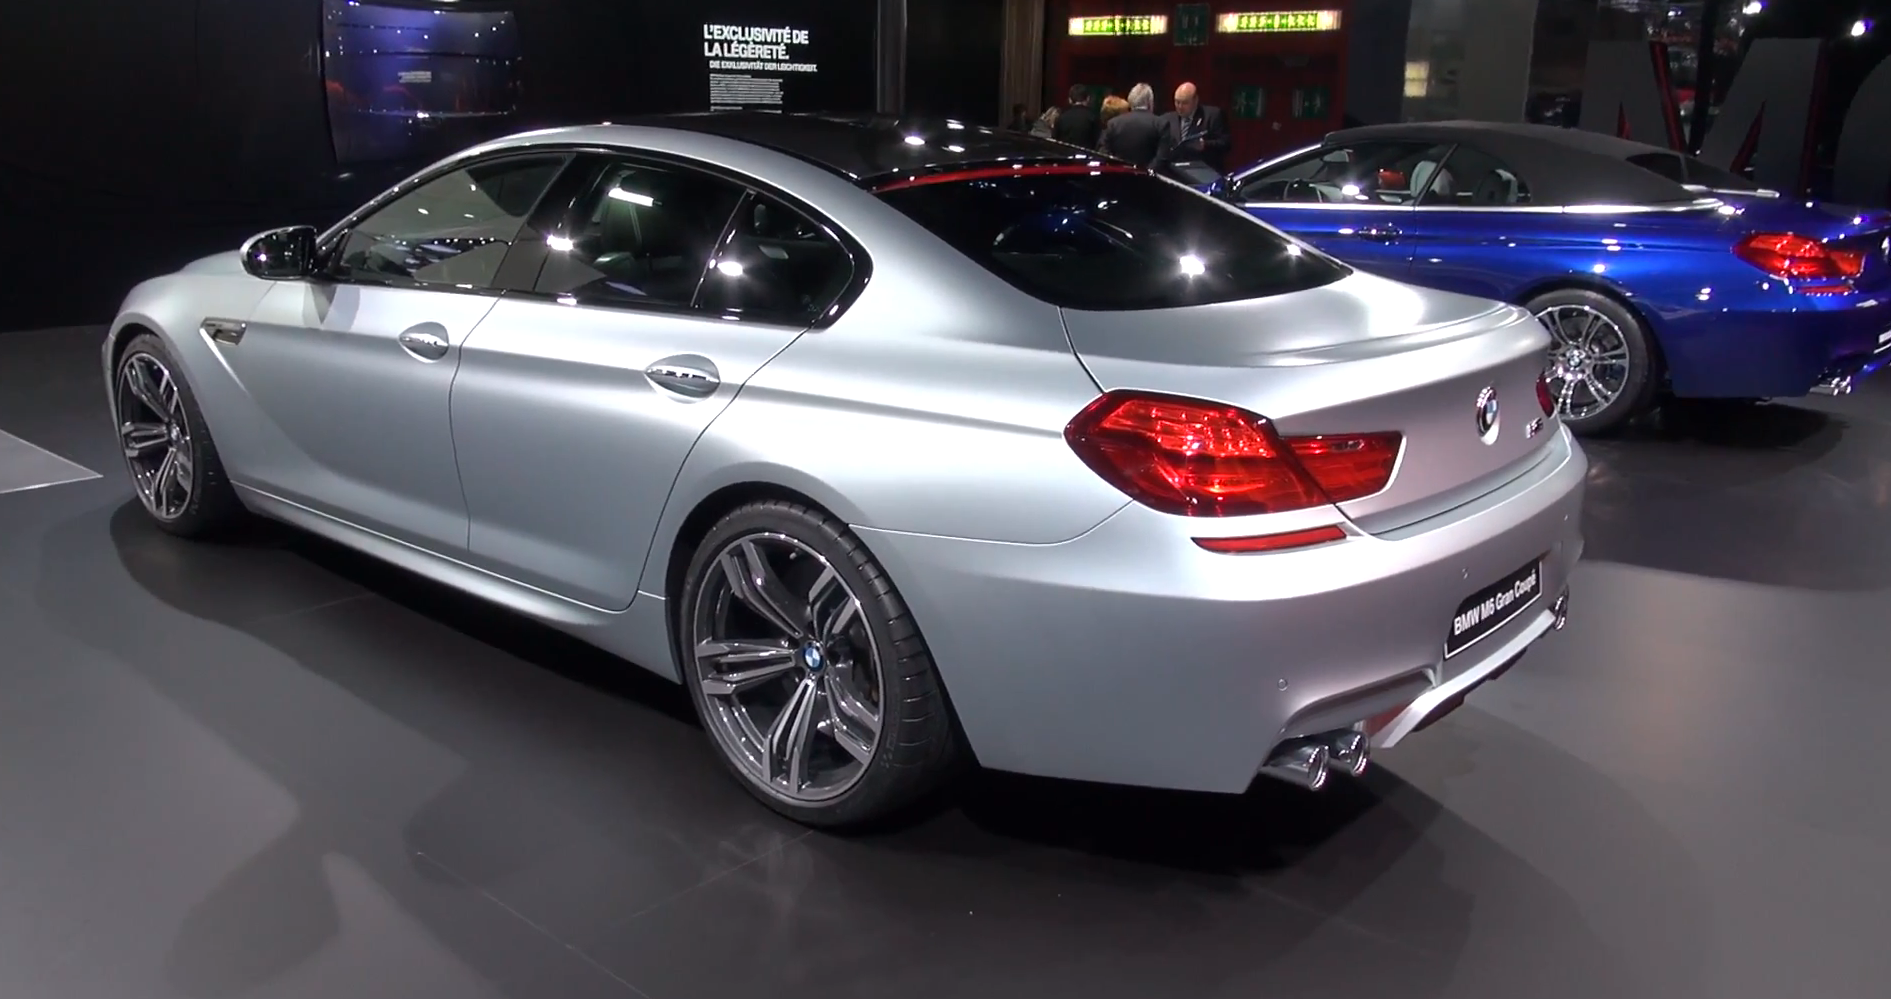 bmw m6 gran coupe in detail at geneva 2013 autoevolution. Black Bedroom Furniture Sets. Home Design Ideas